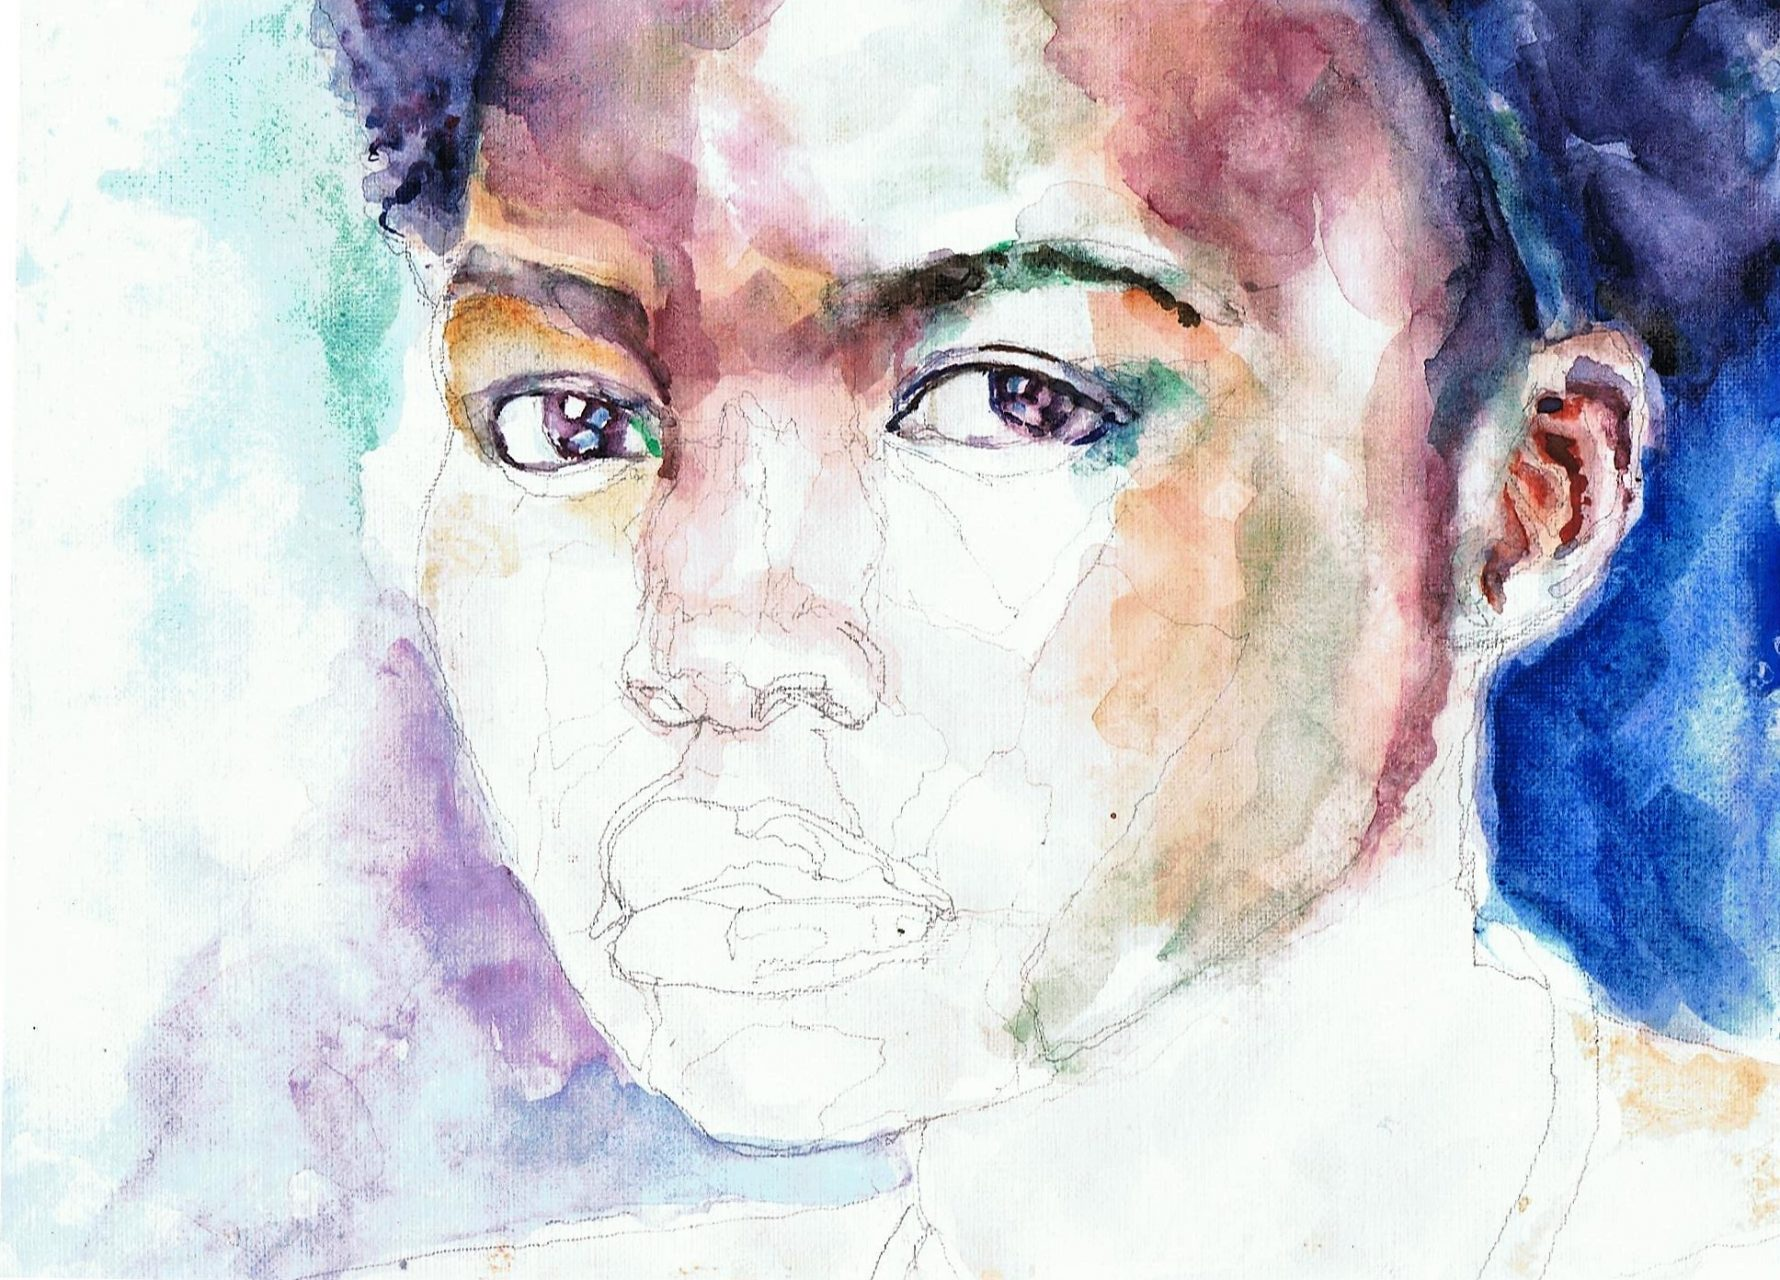 365 dagen een portret 144 Lupita Nuong'o, actrice Aquarel 19c25